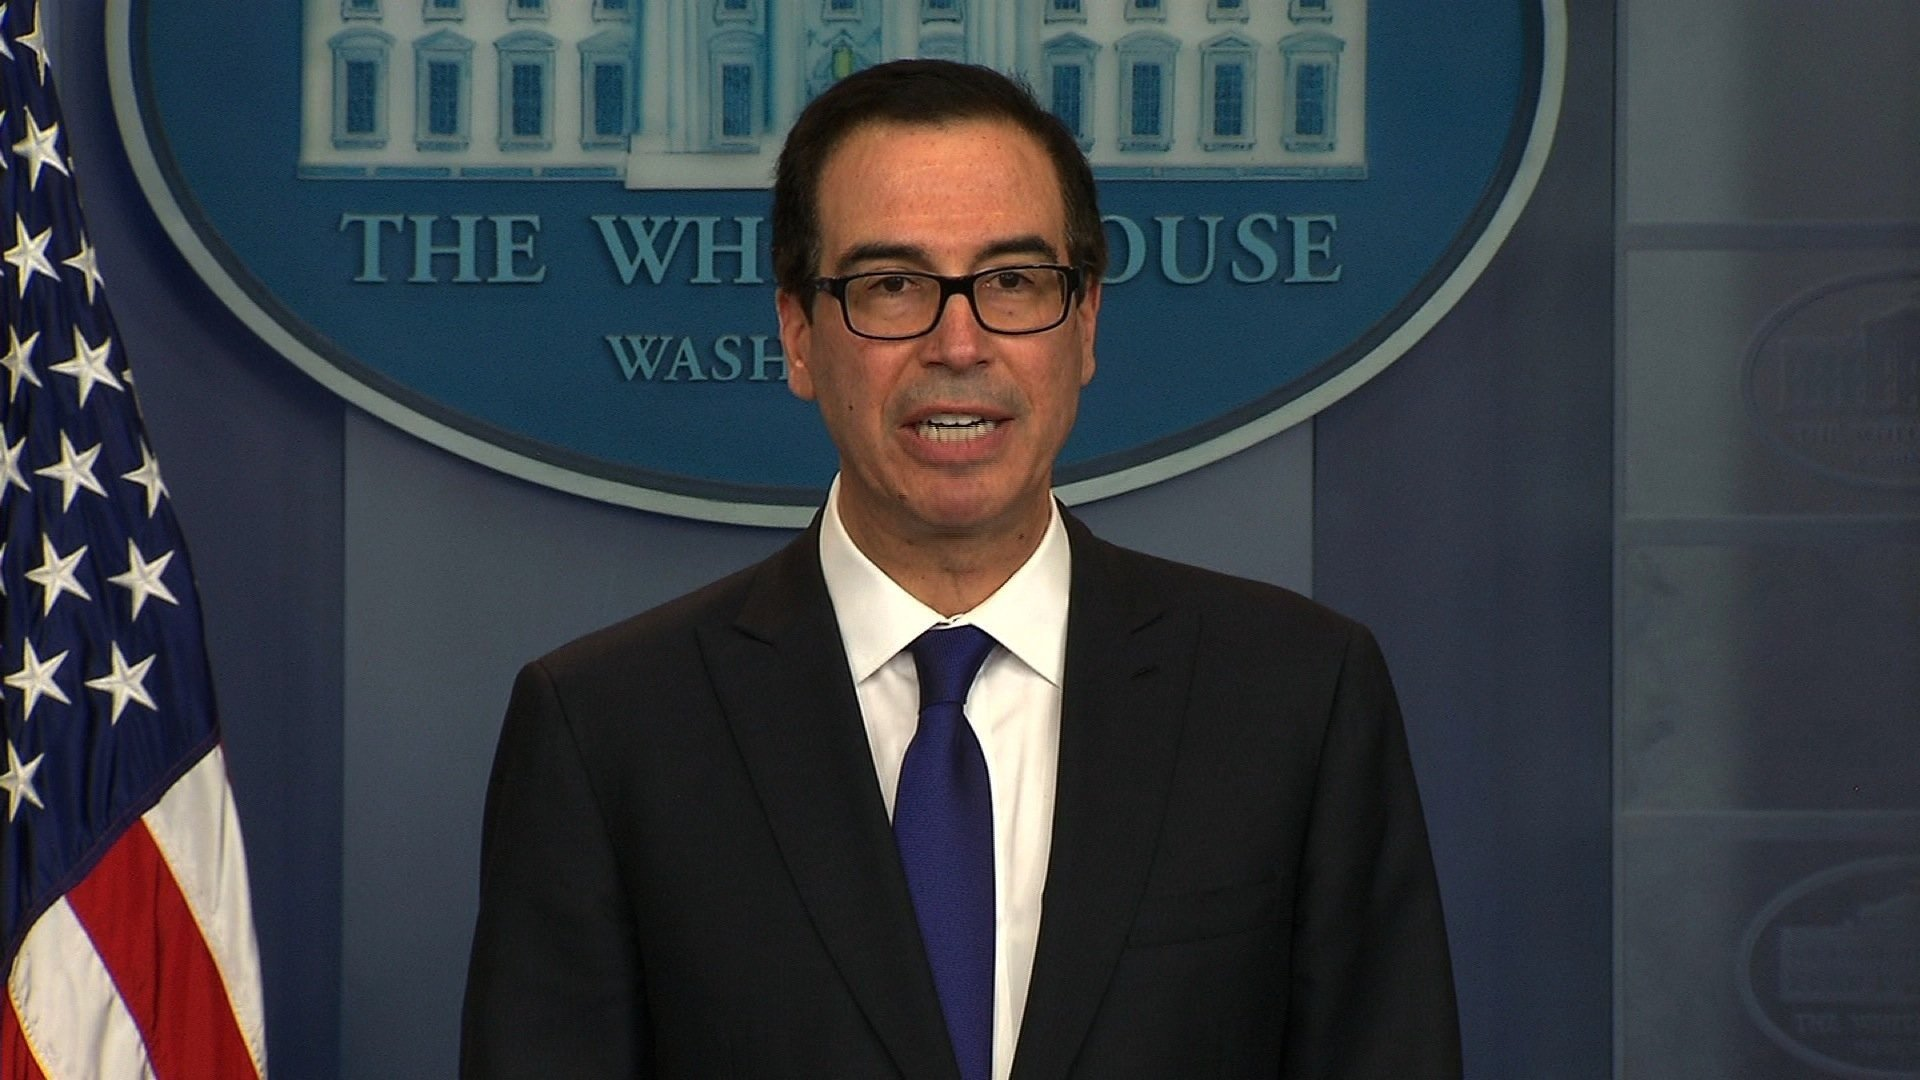 Honeymoon plane request was about national security - Mnuchin